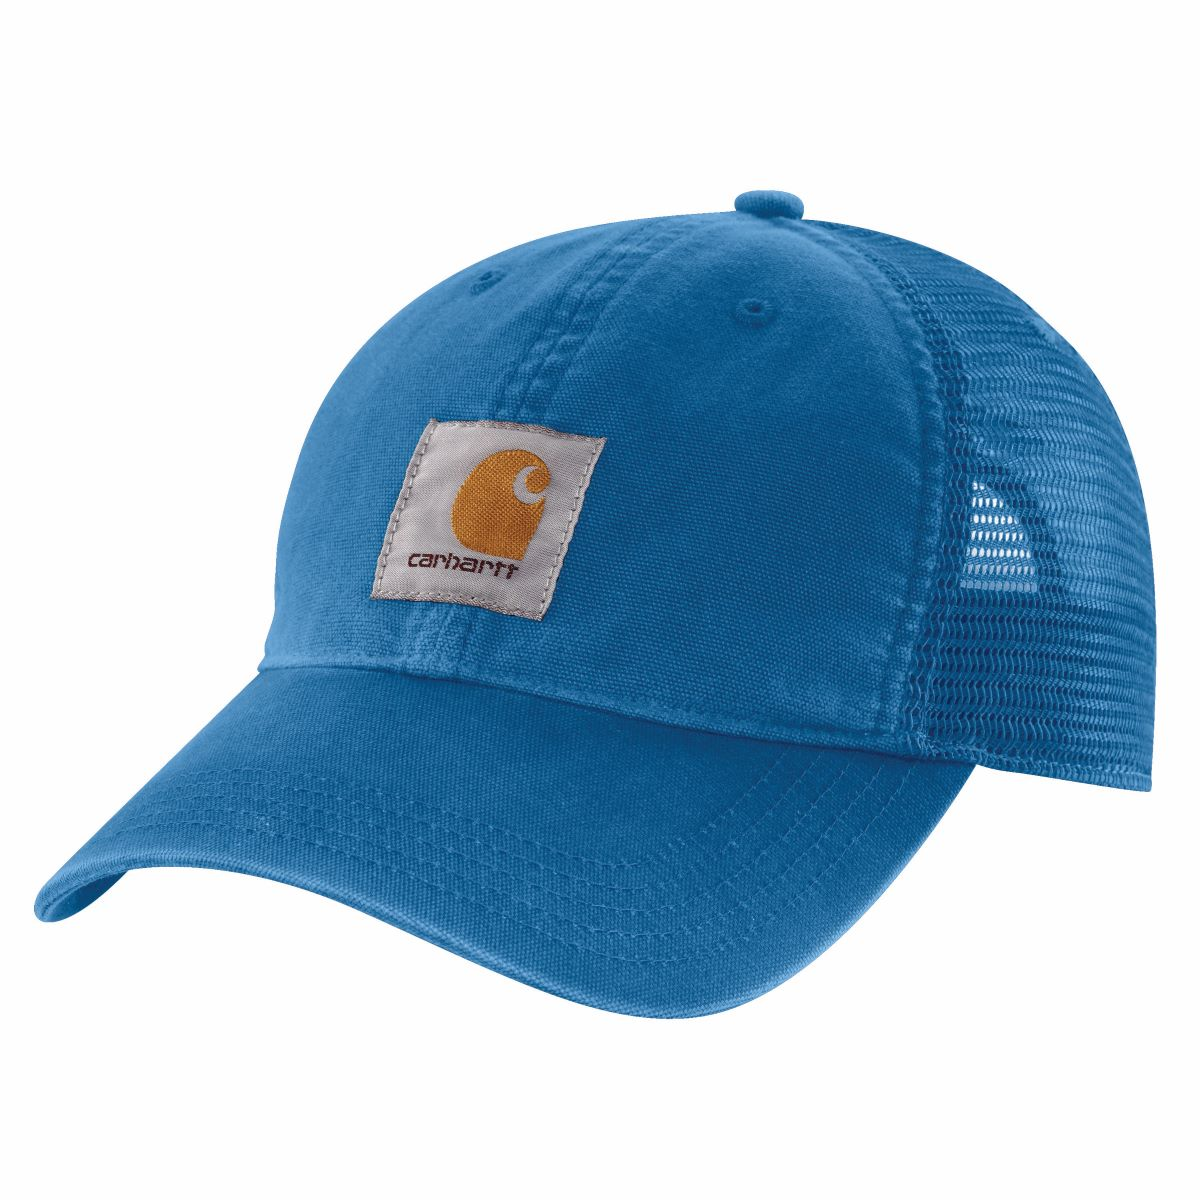 'Carhartt' Unisex Mesh Back Adjustable Cap - Light Cobalt